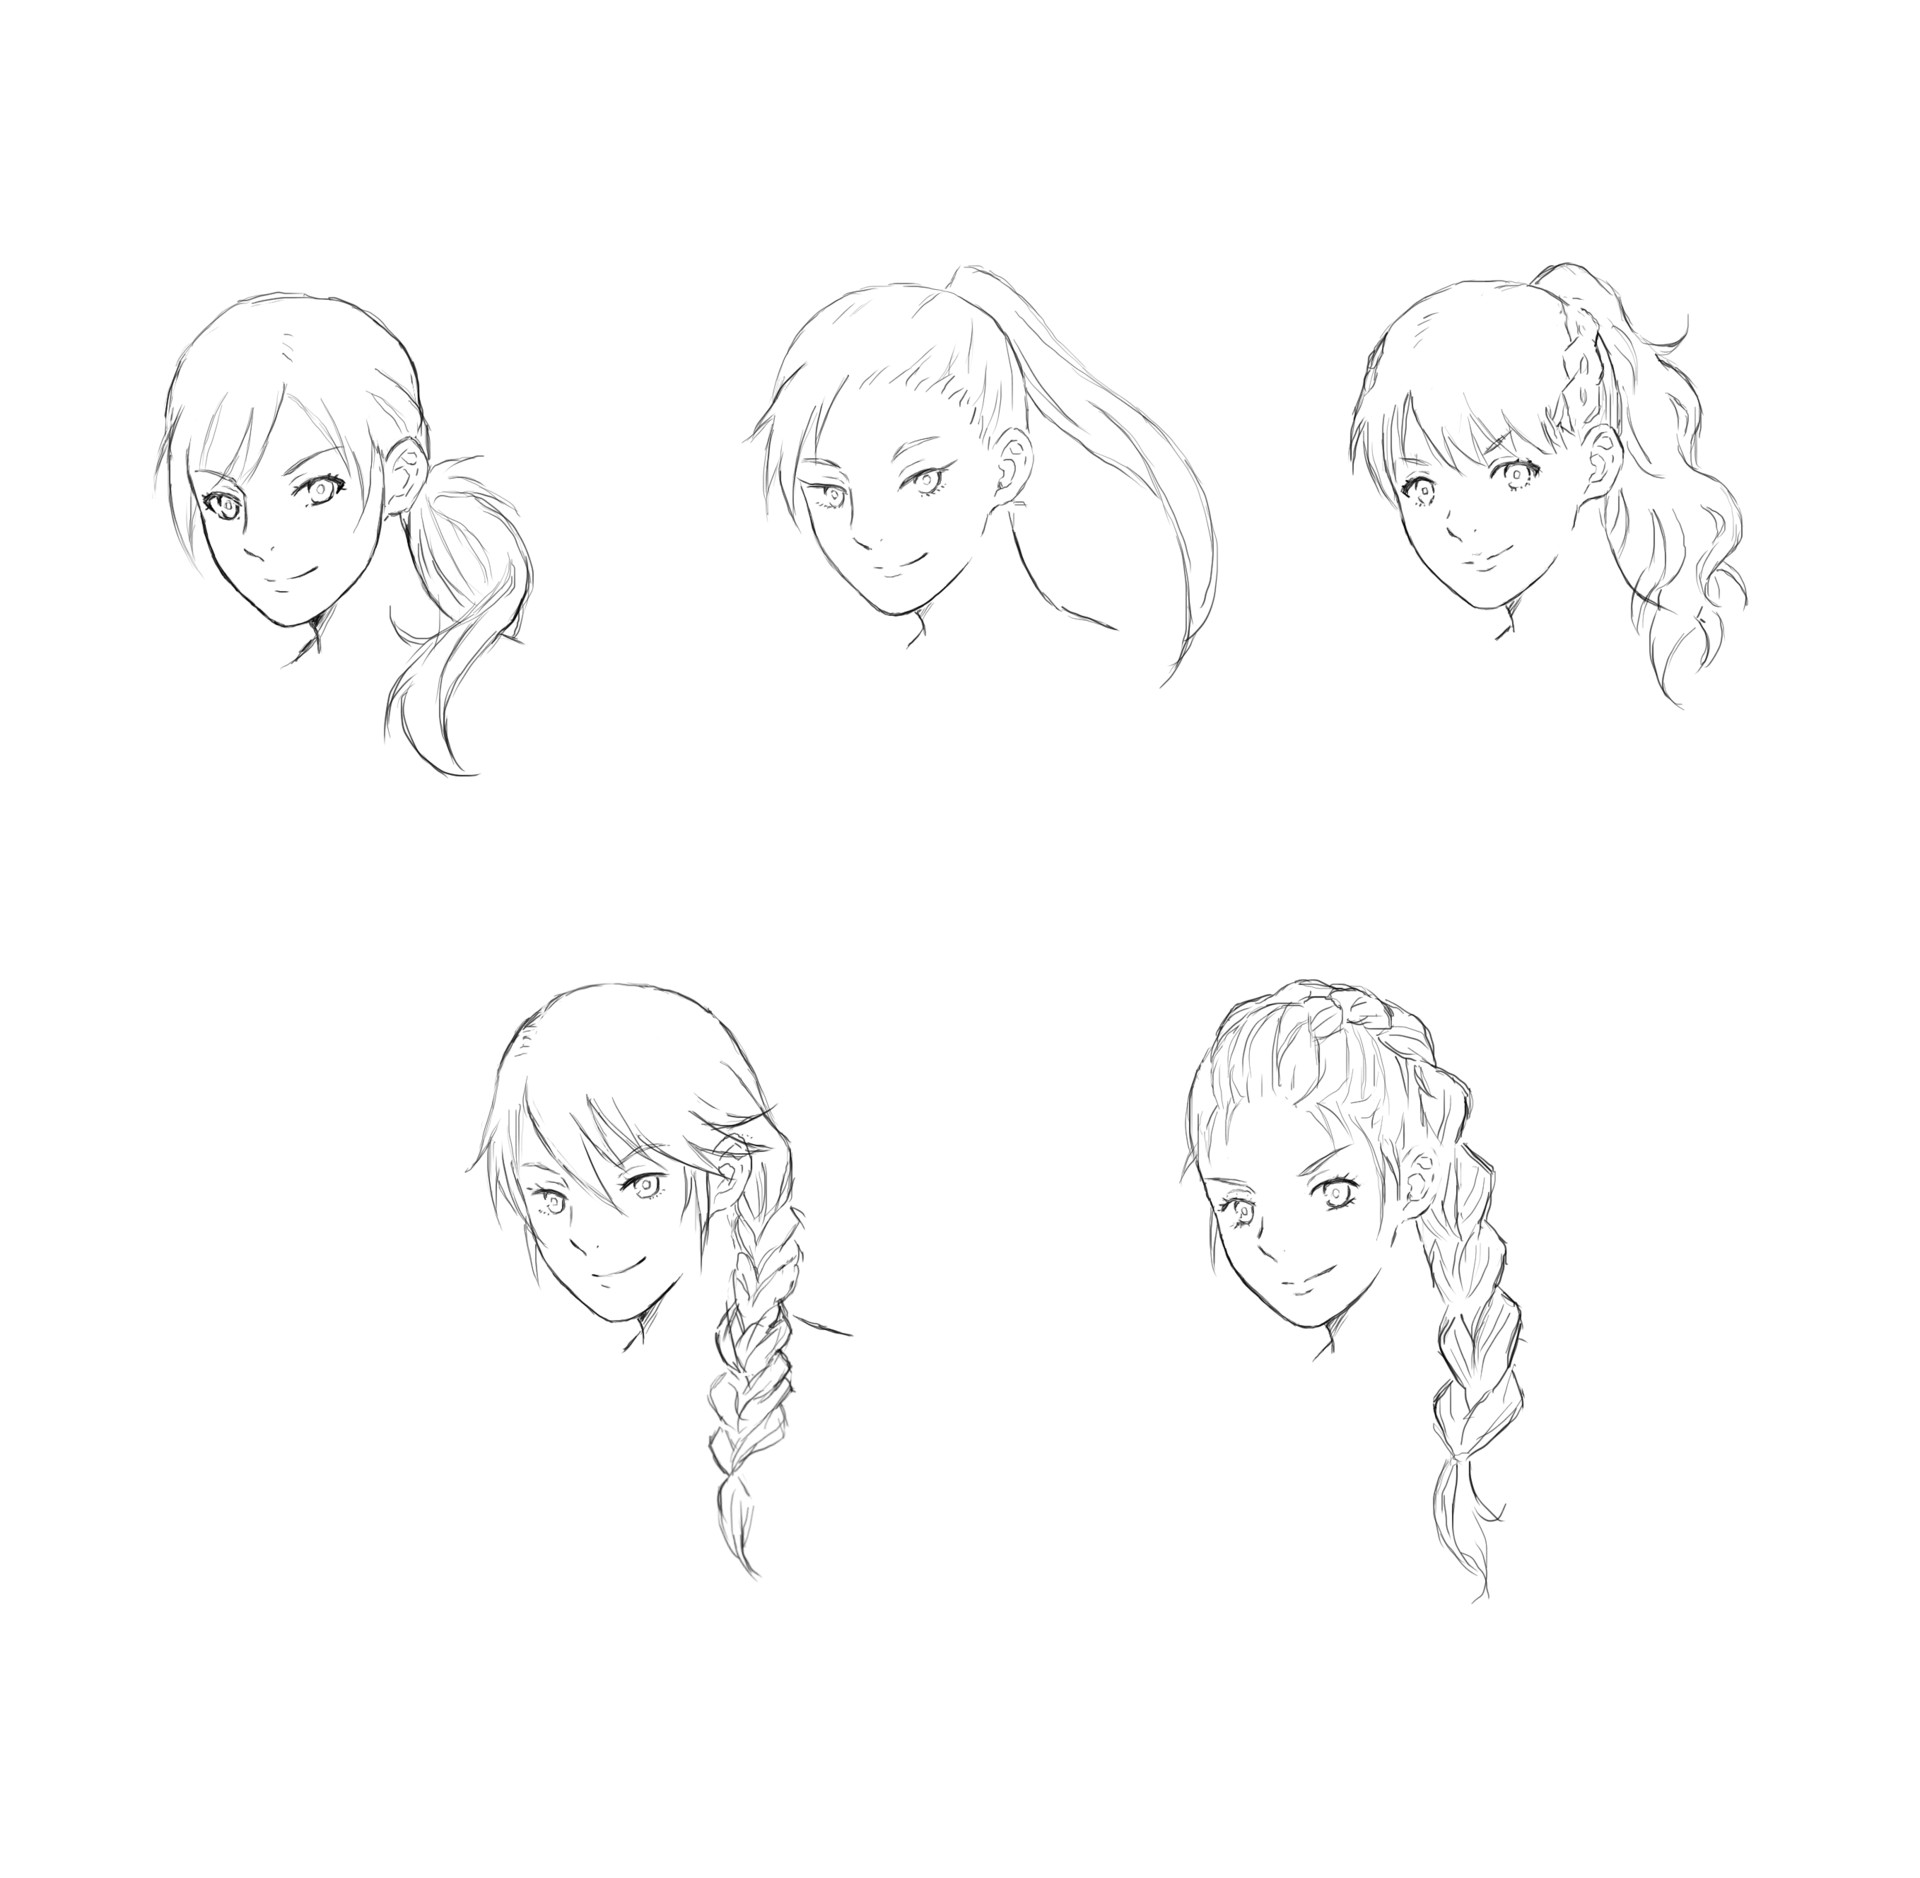 Jesu gormaz adult lyfia face sketches